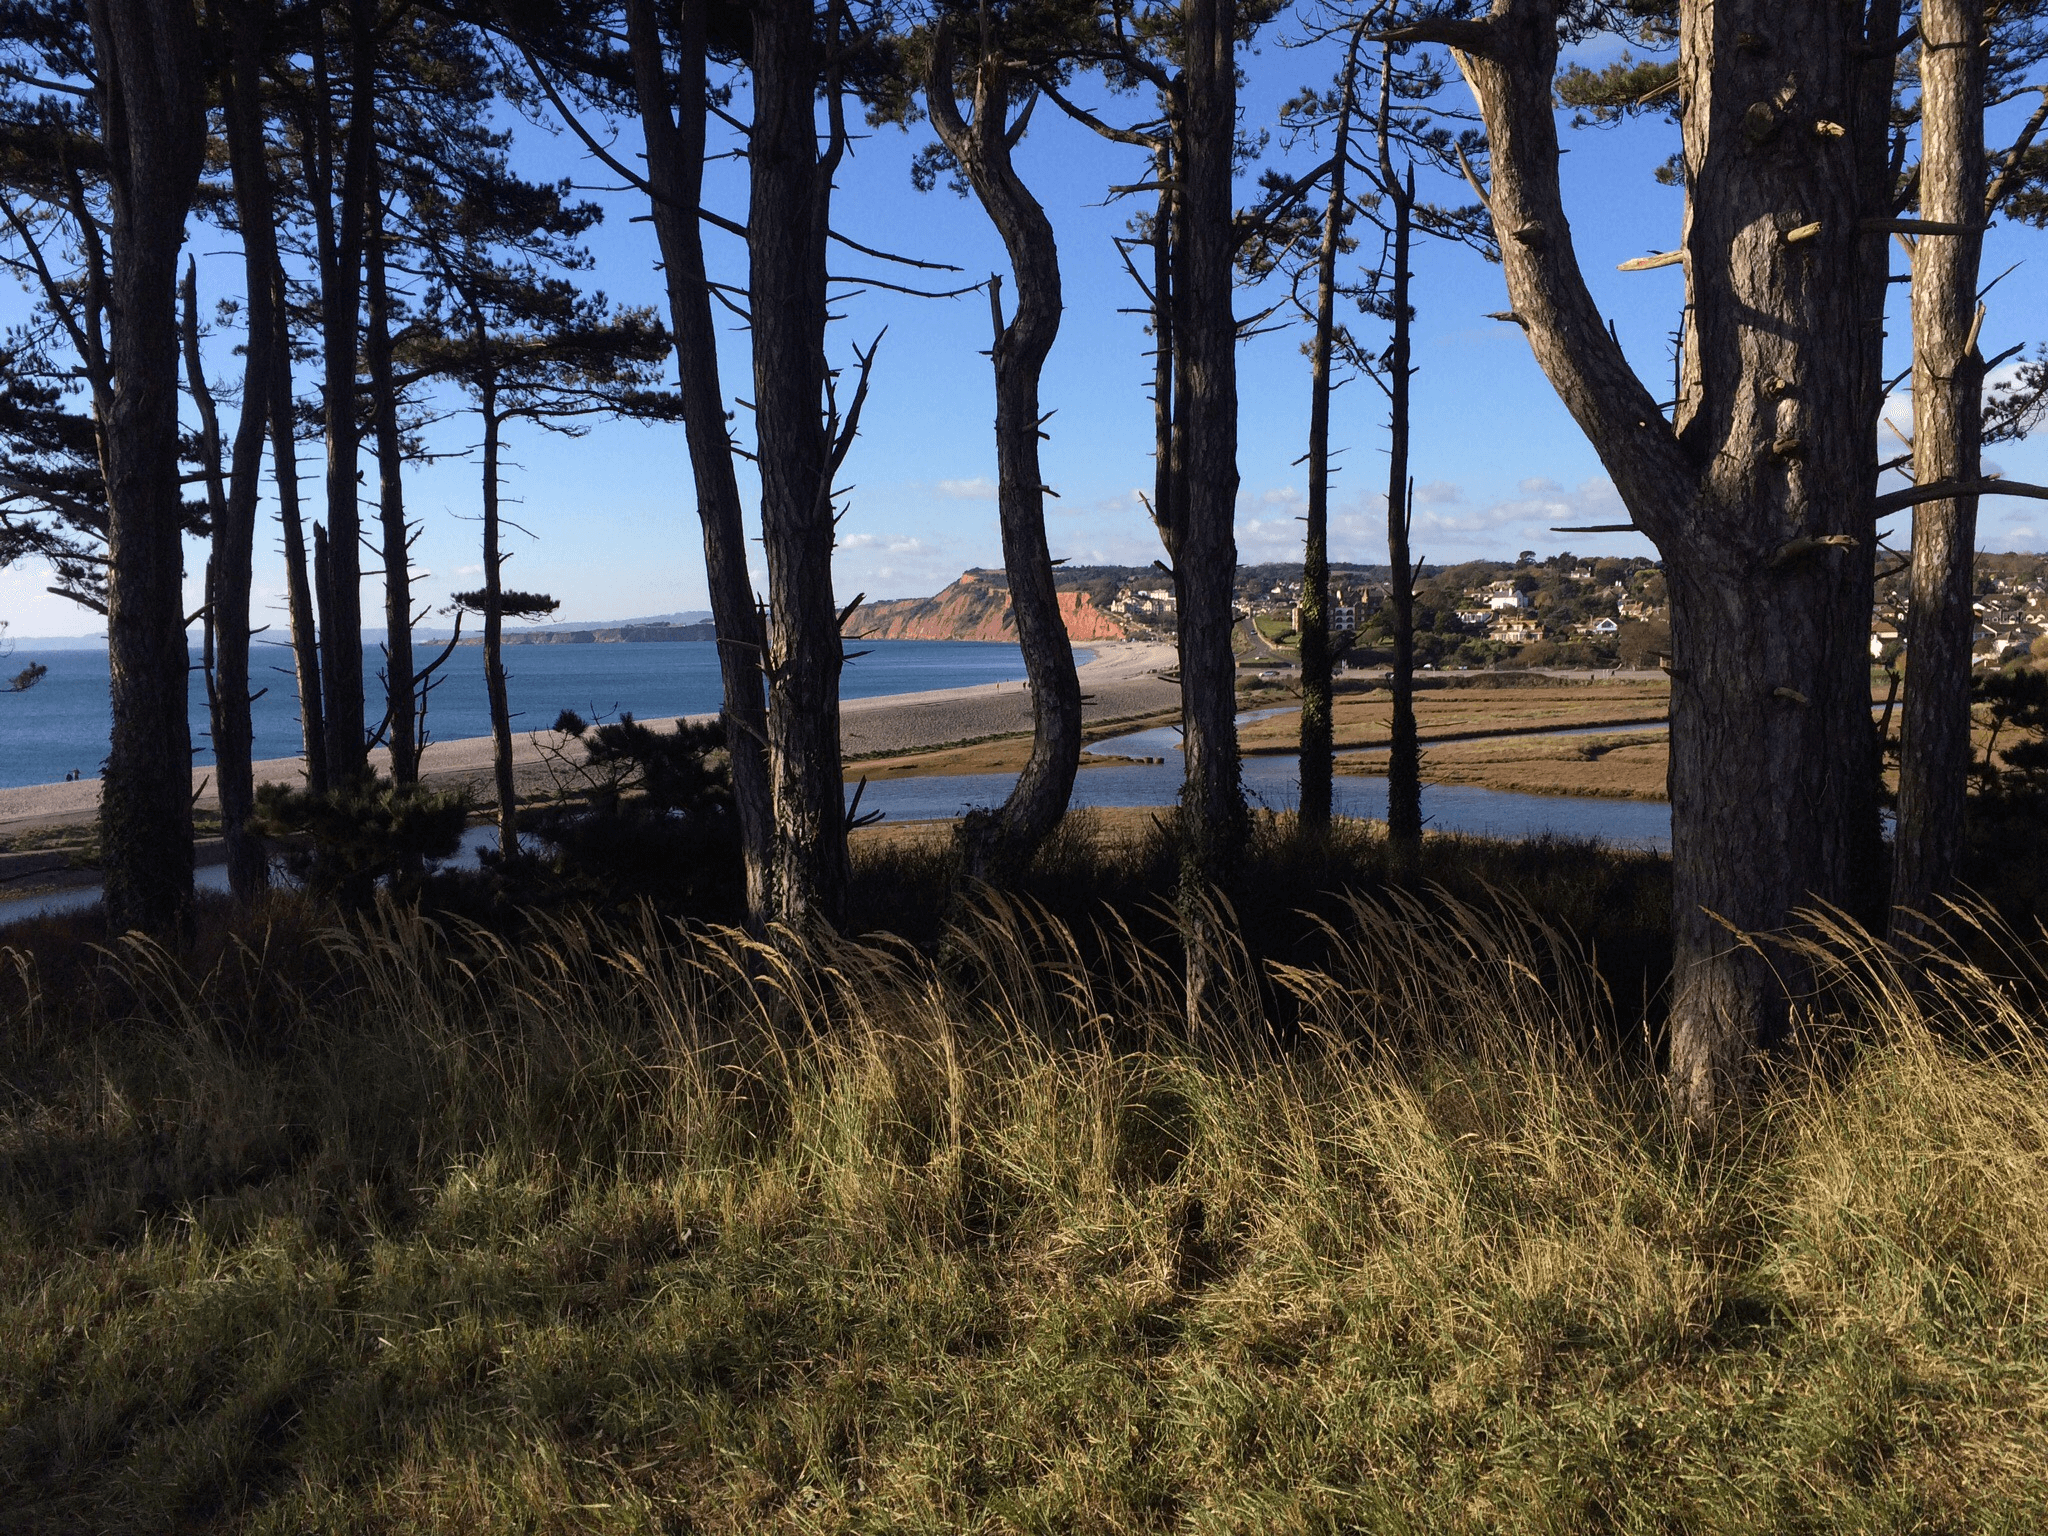 Budleigh Salterton, nearing the end of the 100 km run